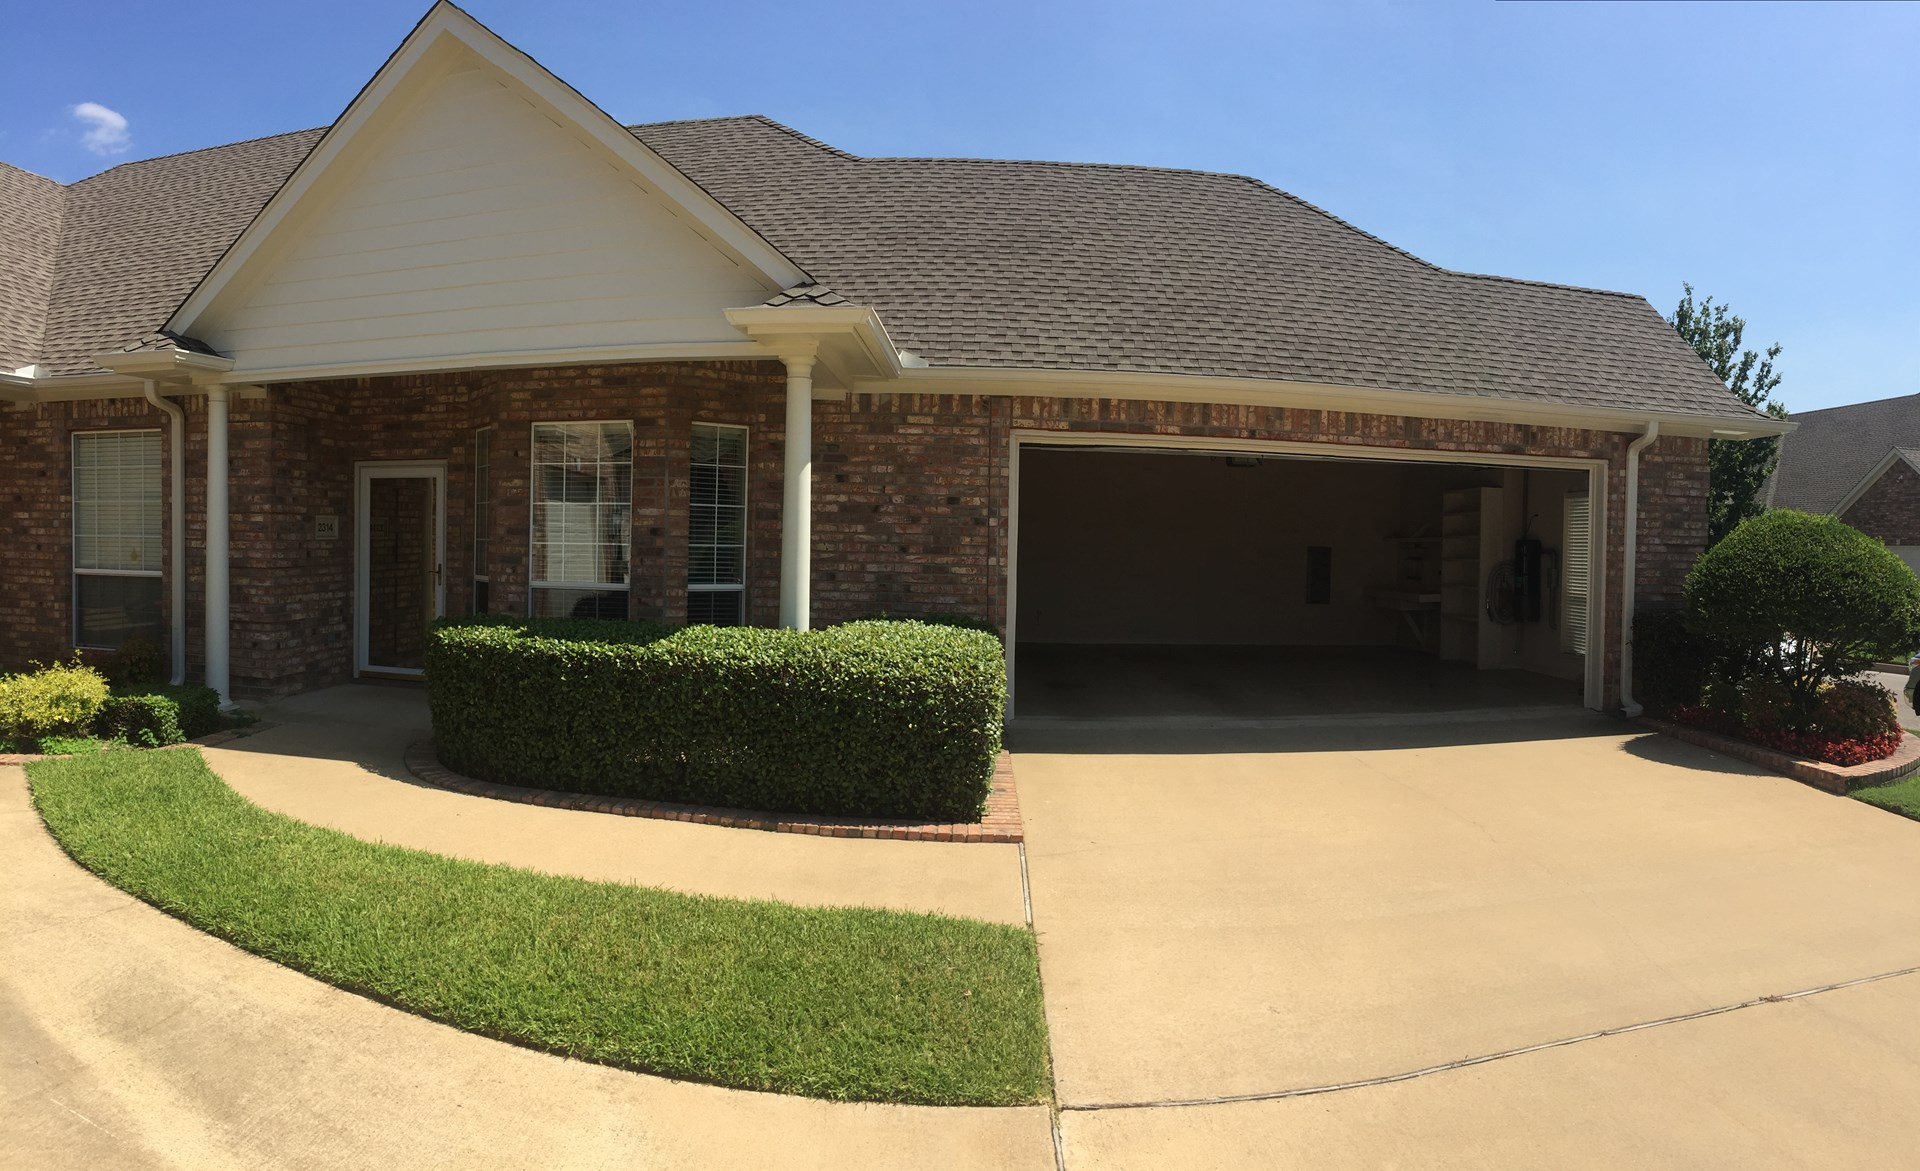 Tyler Texas Garden Home For Sale In Gated Community